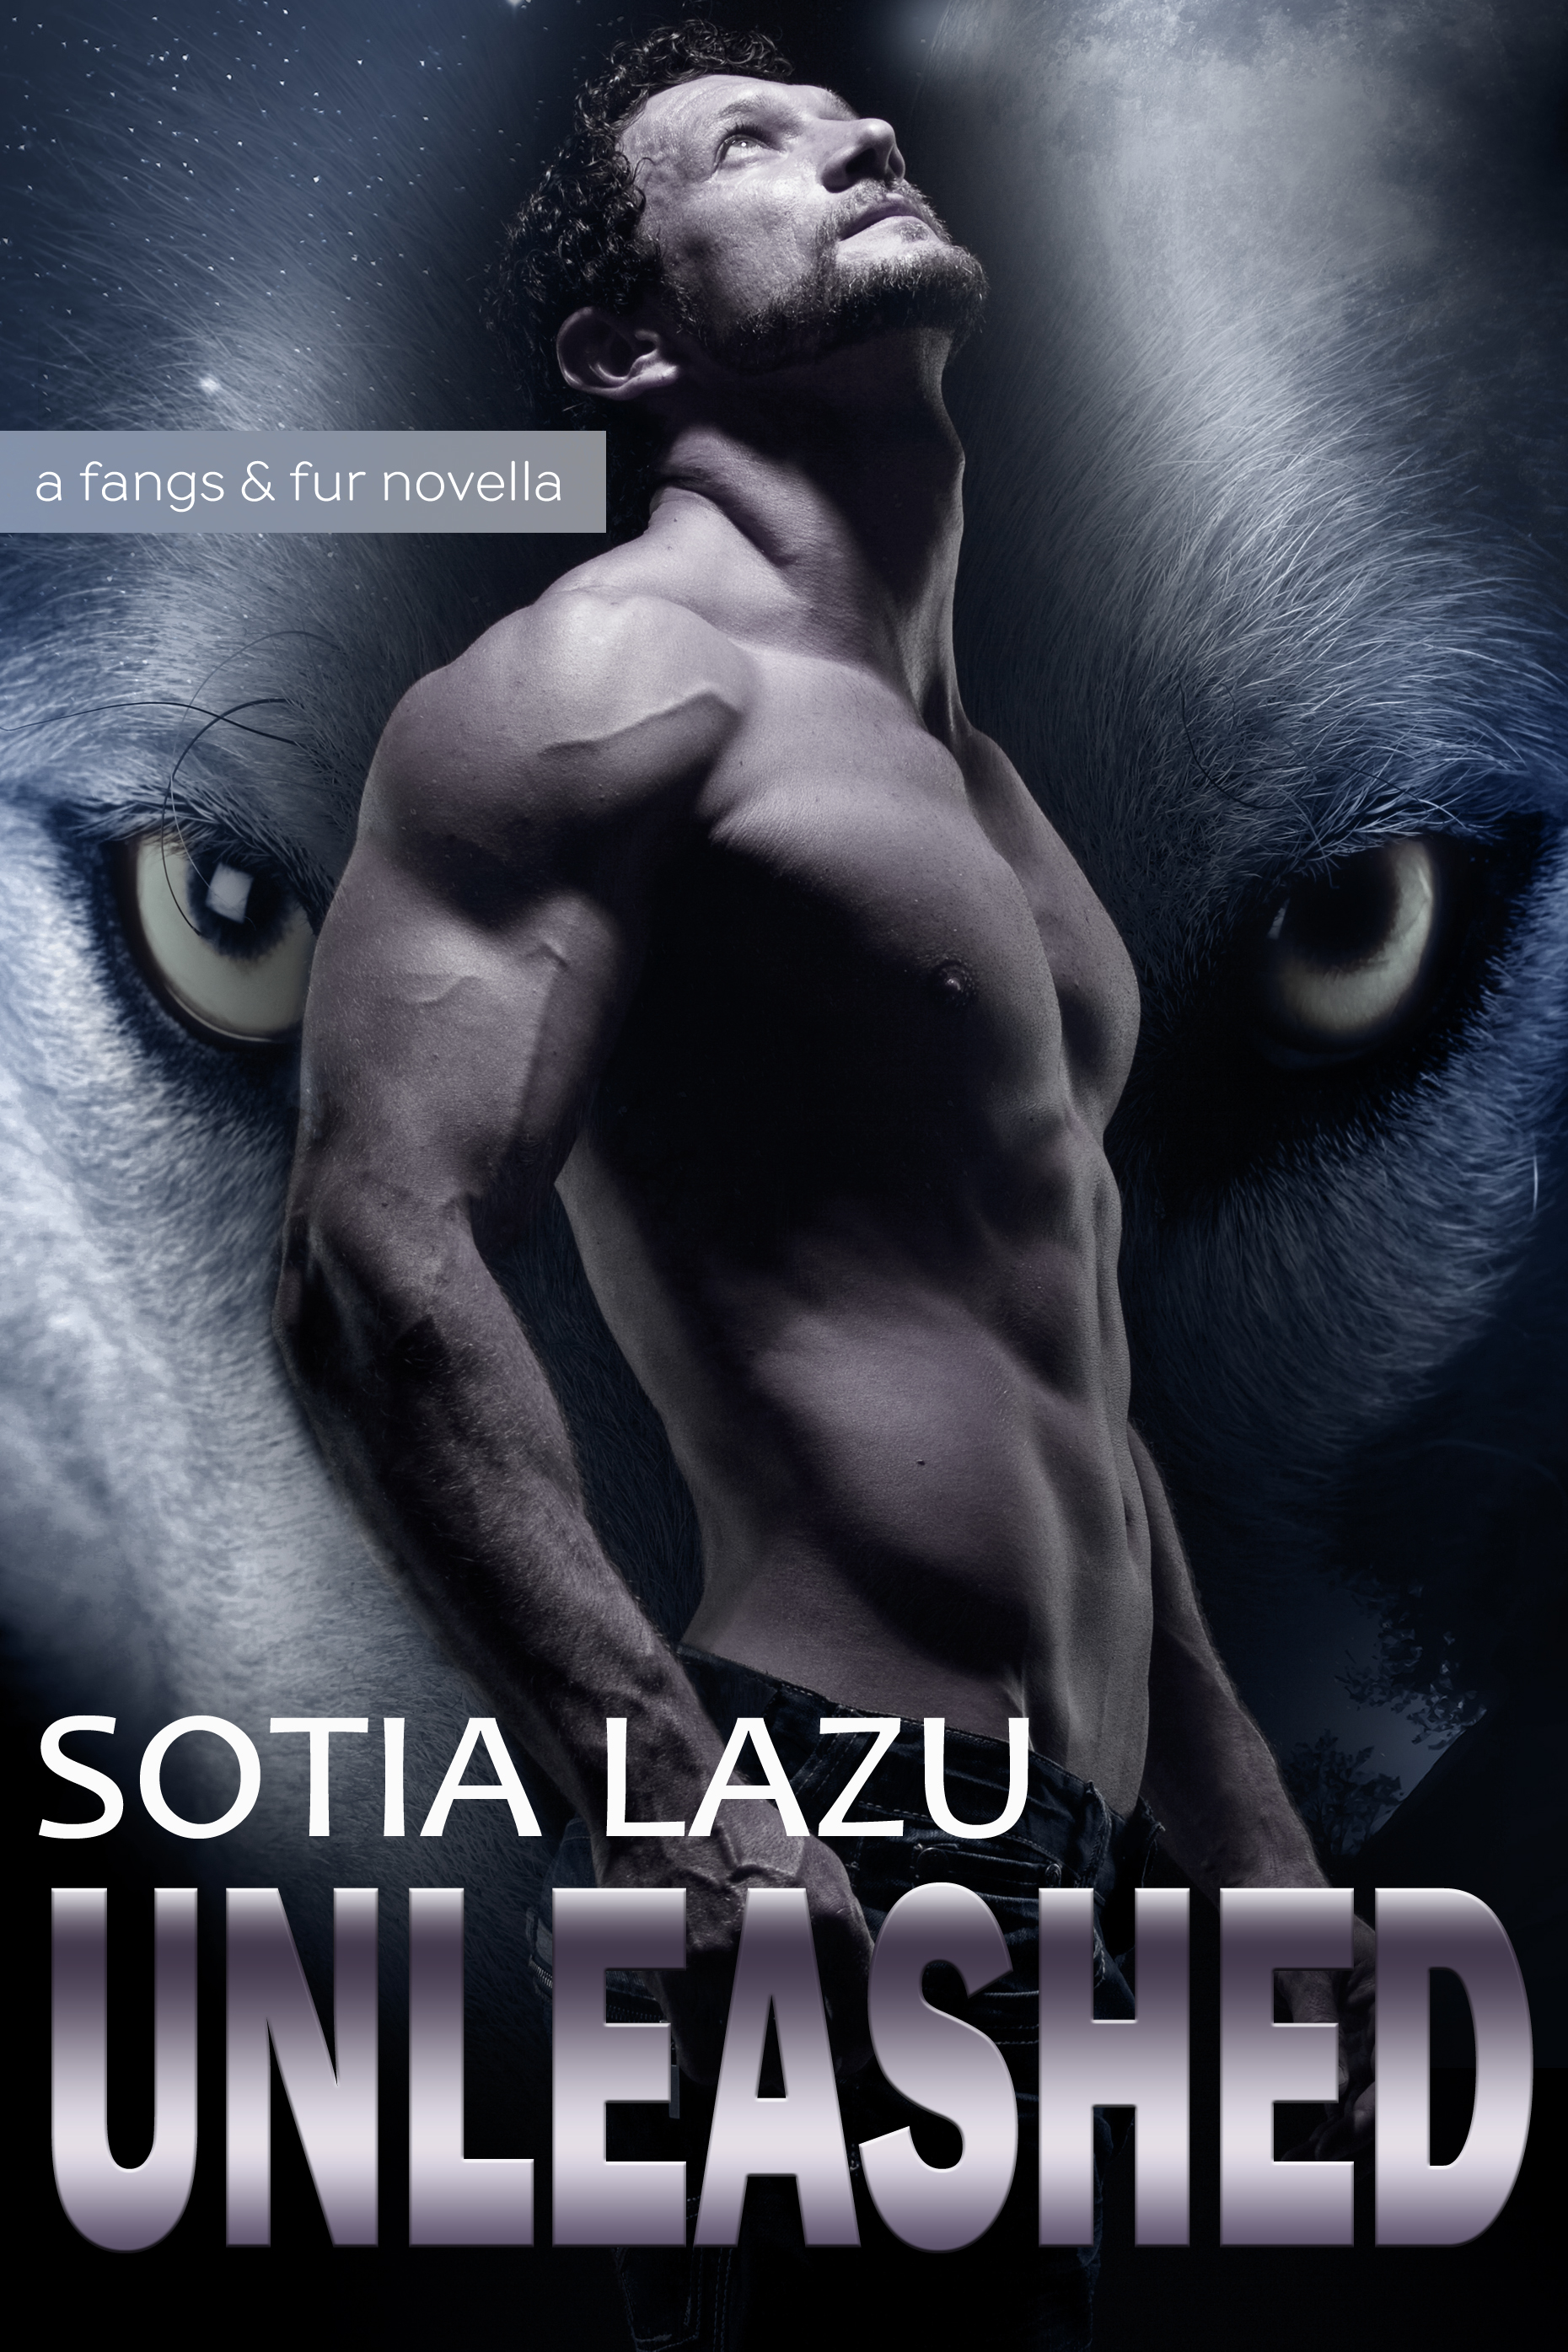 Unleashed by Sotia Lazu